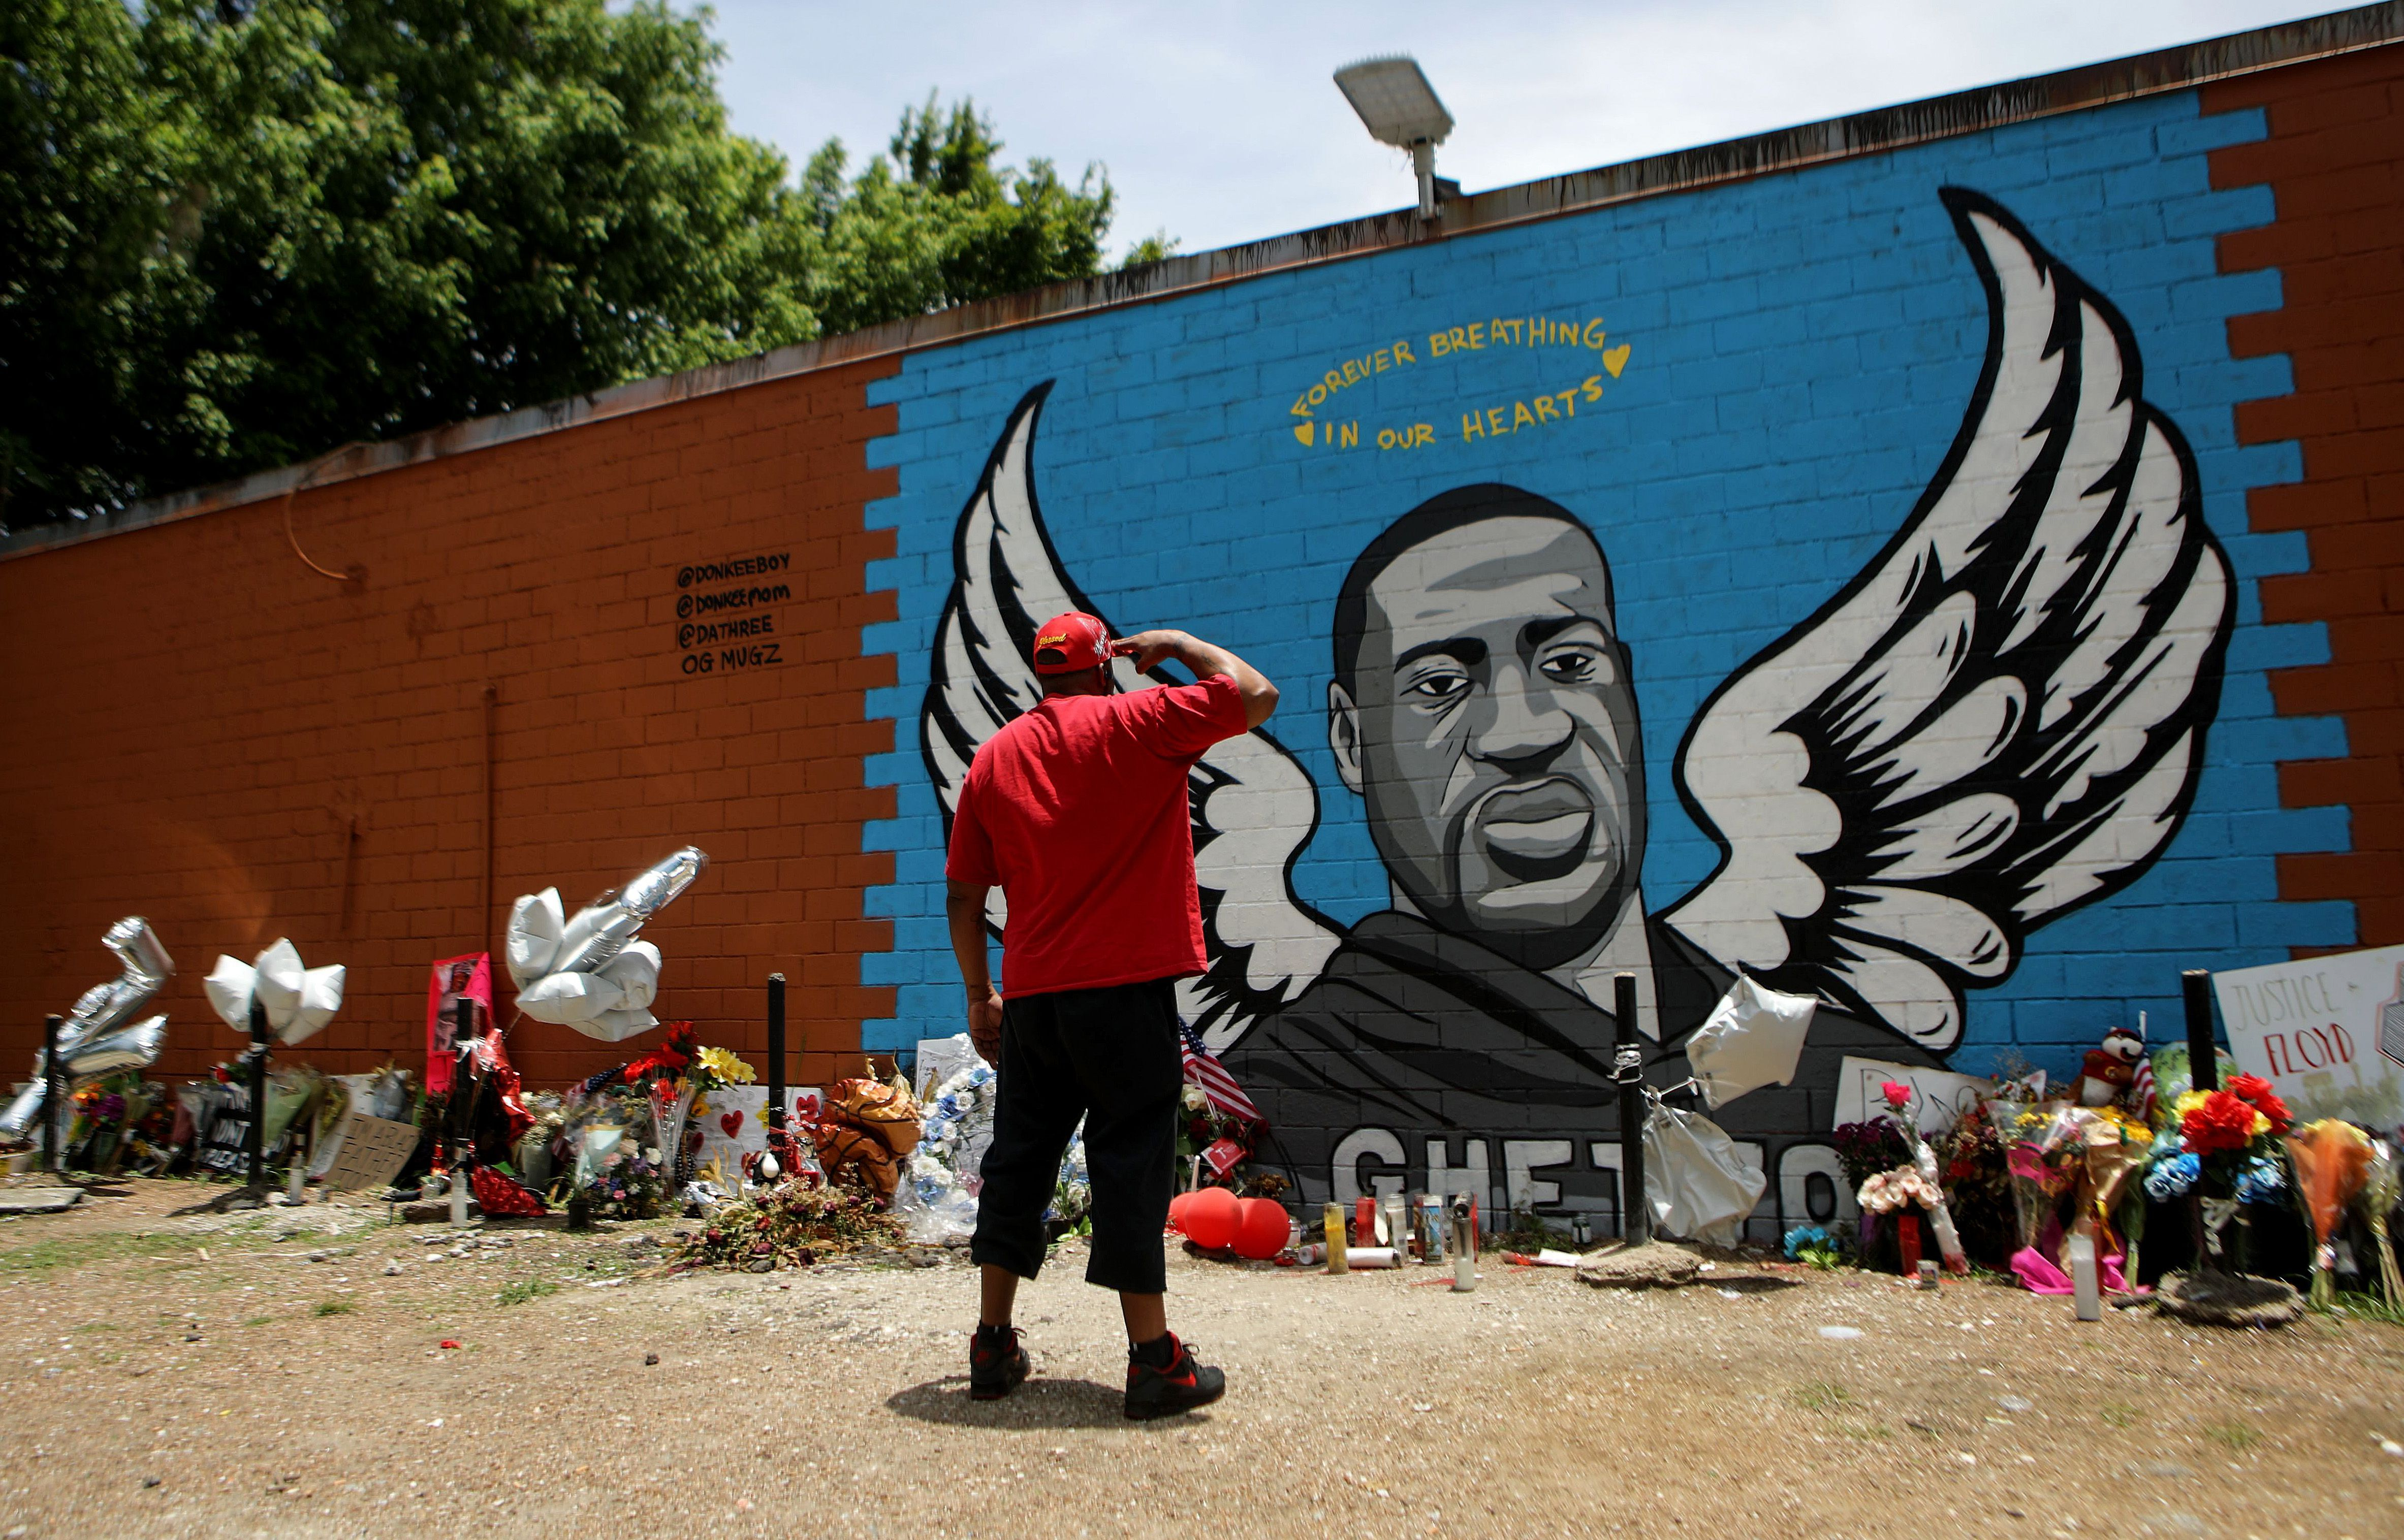 HOUSTON, TEXAS - JUNE 10: A man salutes at a mural dedicated to George Floyd, across the street from the Cuney Homes housing project in Houston's Third Ward, where Floyd grew up and later mentored young men, on June 10, 2020 in Houston, Texas. George Floyd died on May 25th when he was in Minneapolis police custody, sparking nationwide protests. A white police officer, Derek Chauvin, has been charged with second-degree murder, with the three other officers involved facing other charges. (Photo by Mario Tama/Getty Images)